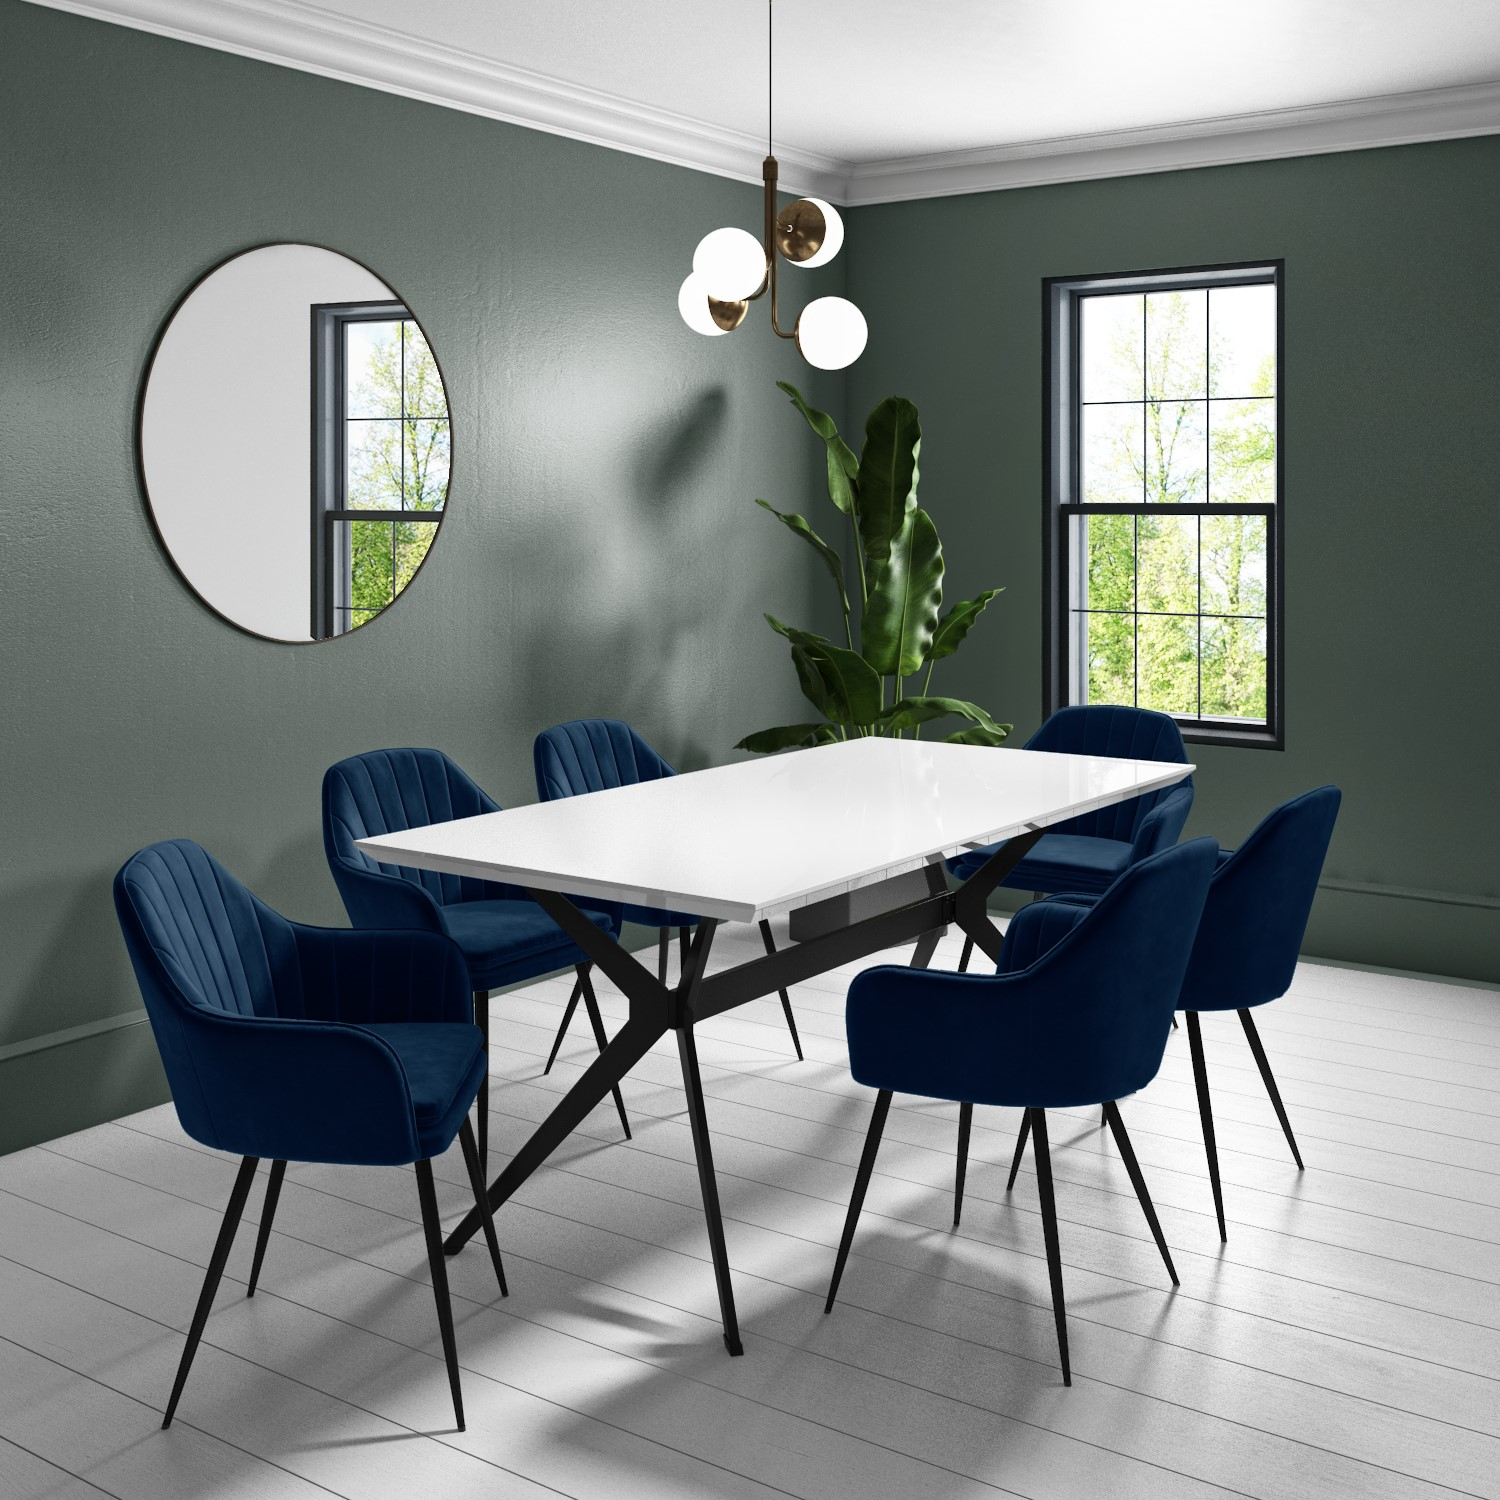 Large White Gloss Modern Dining Table, White Dining Room Table Seats 8